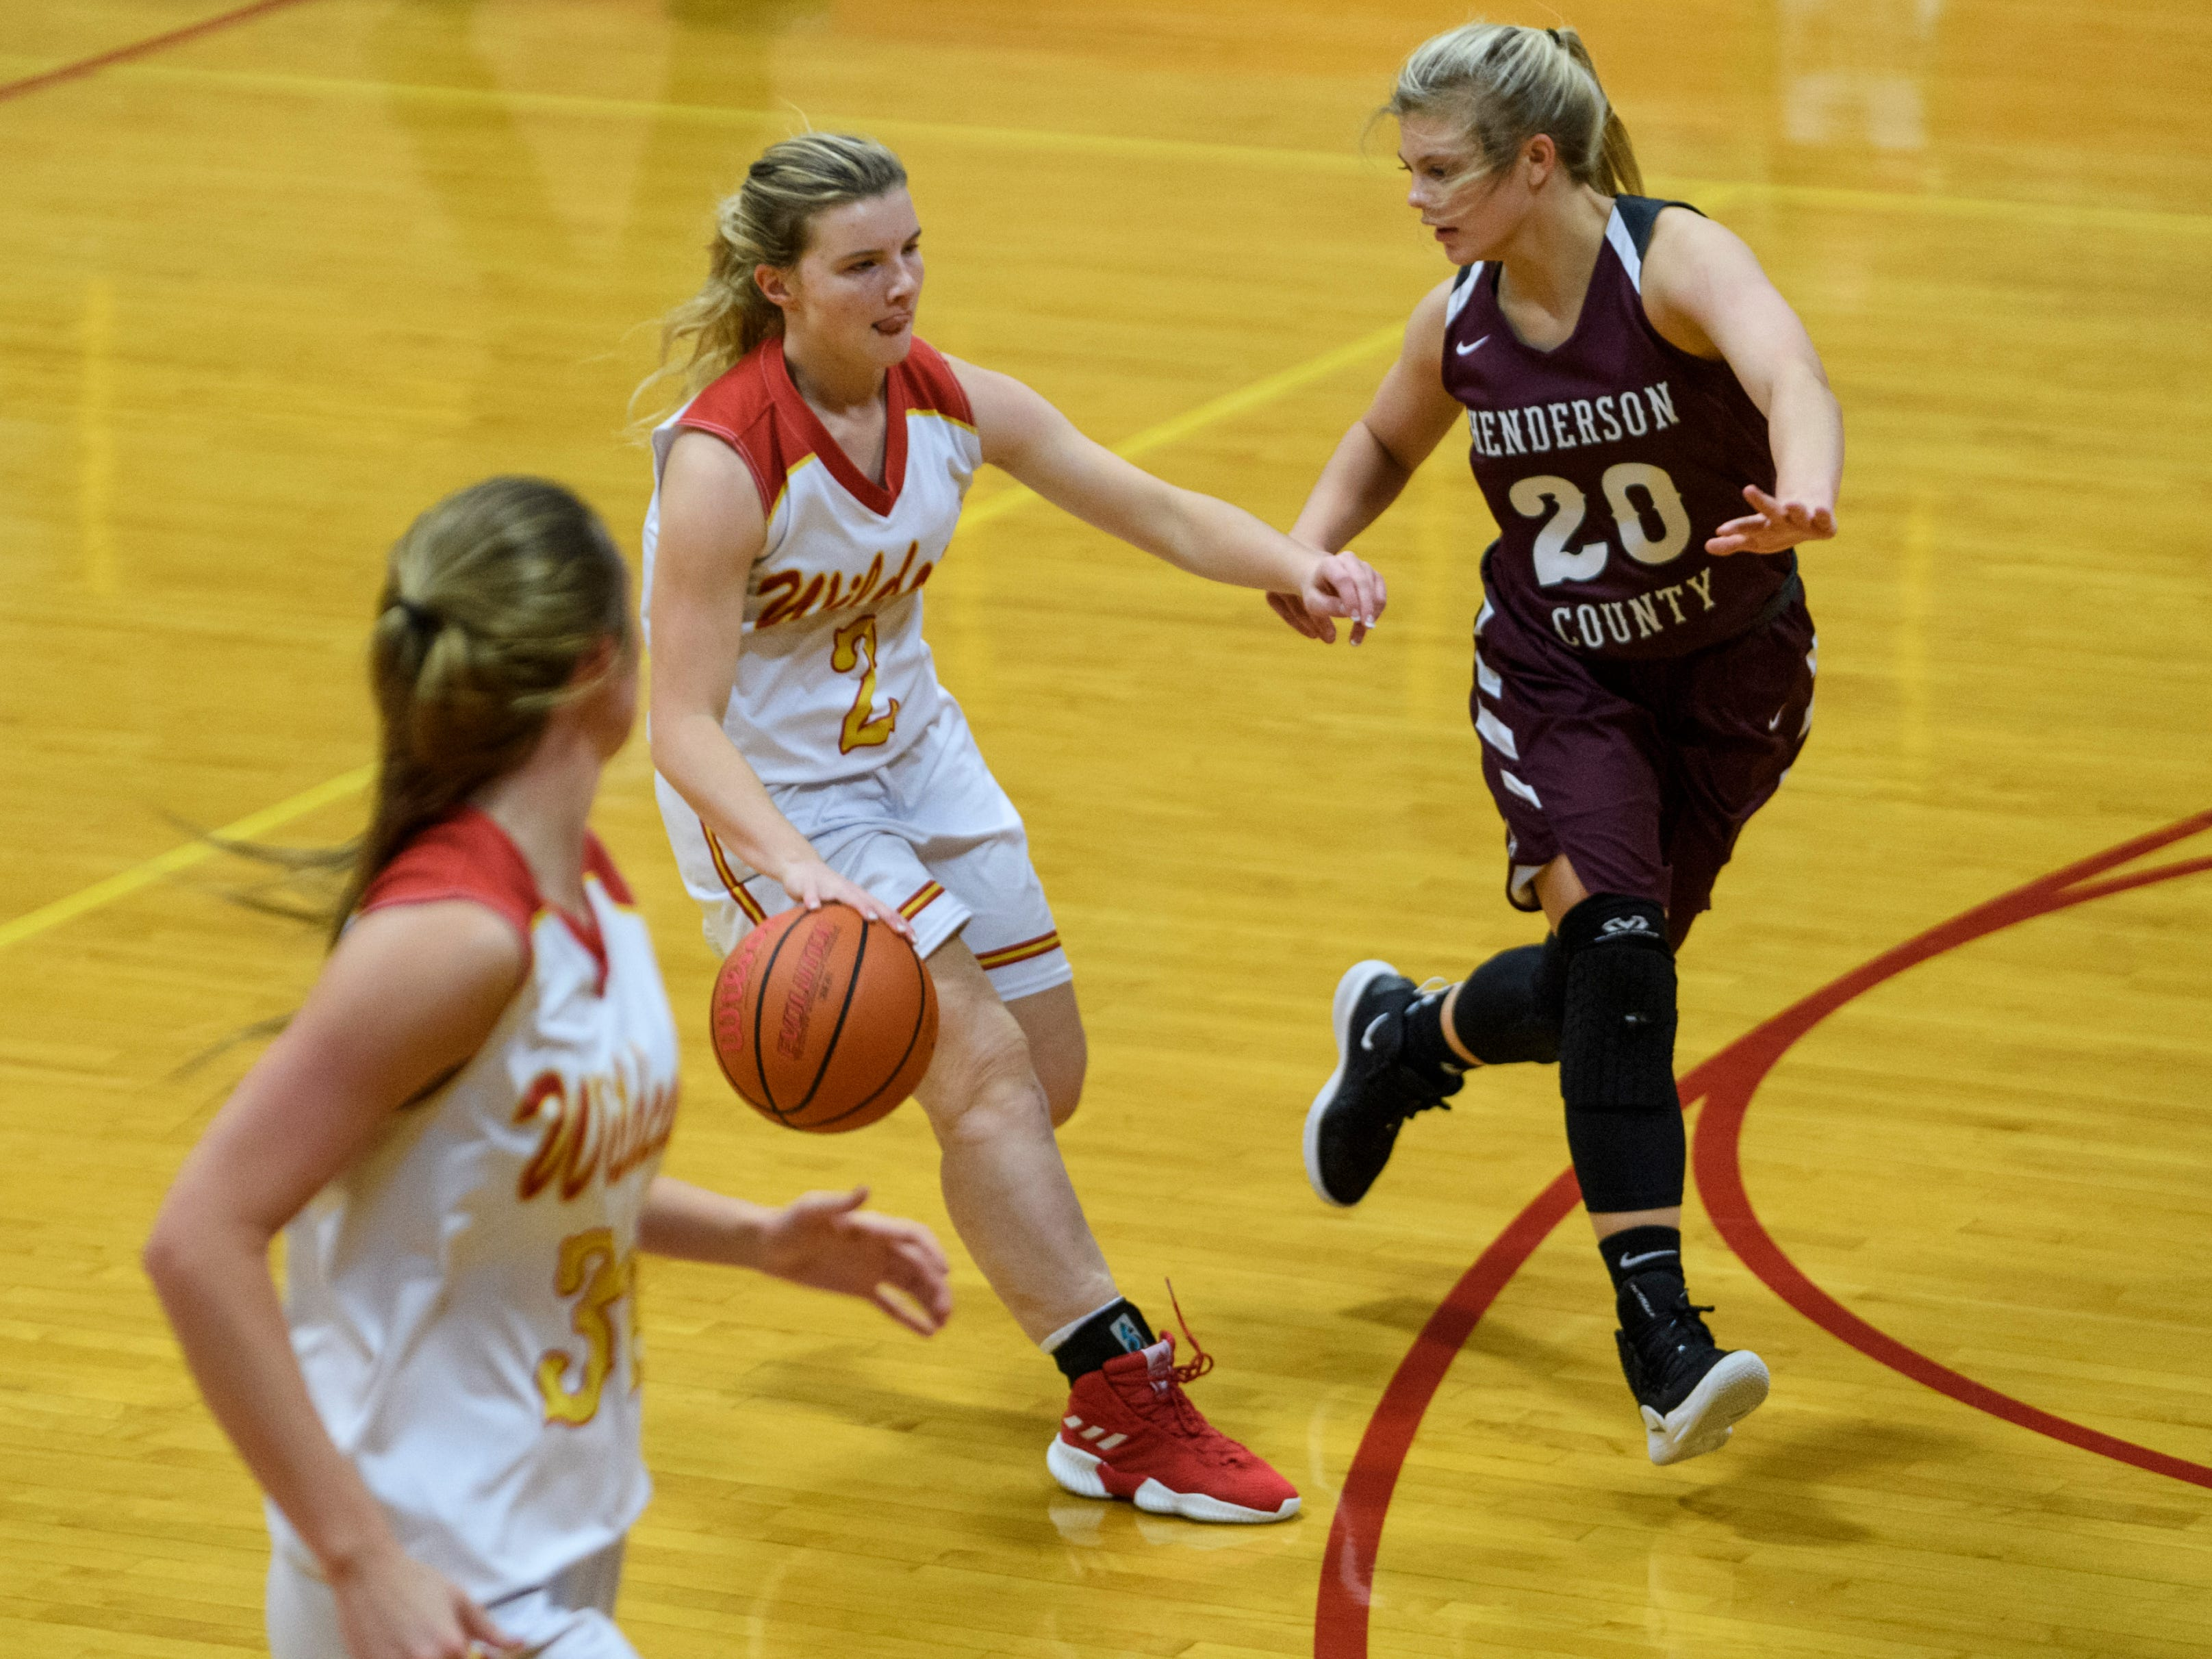 Mater Dei's Anna Boring (2) advances down the court as Henderson County's Kaytlan Kemp (20) attempts to stop her during the fourth quarter at Mater Dei High School in Evansville, Tuesday, Dec. 11, 2018. The Lady Colonels defeated the Wildcats 53-40.